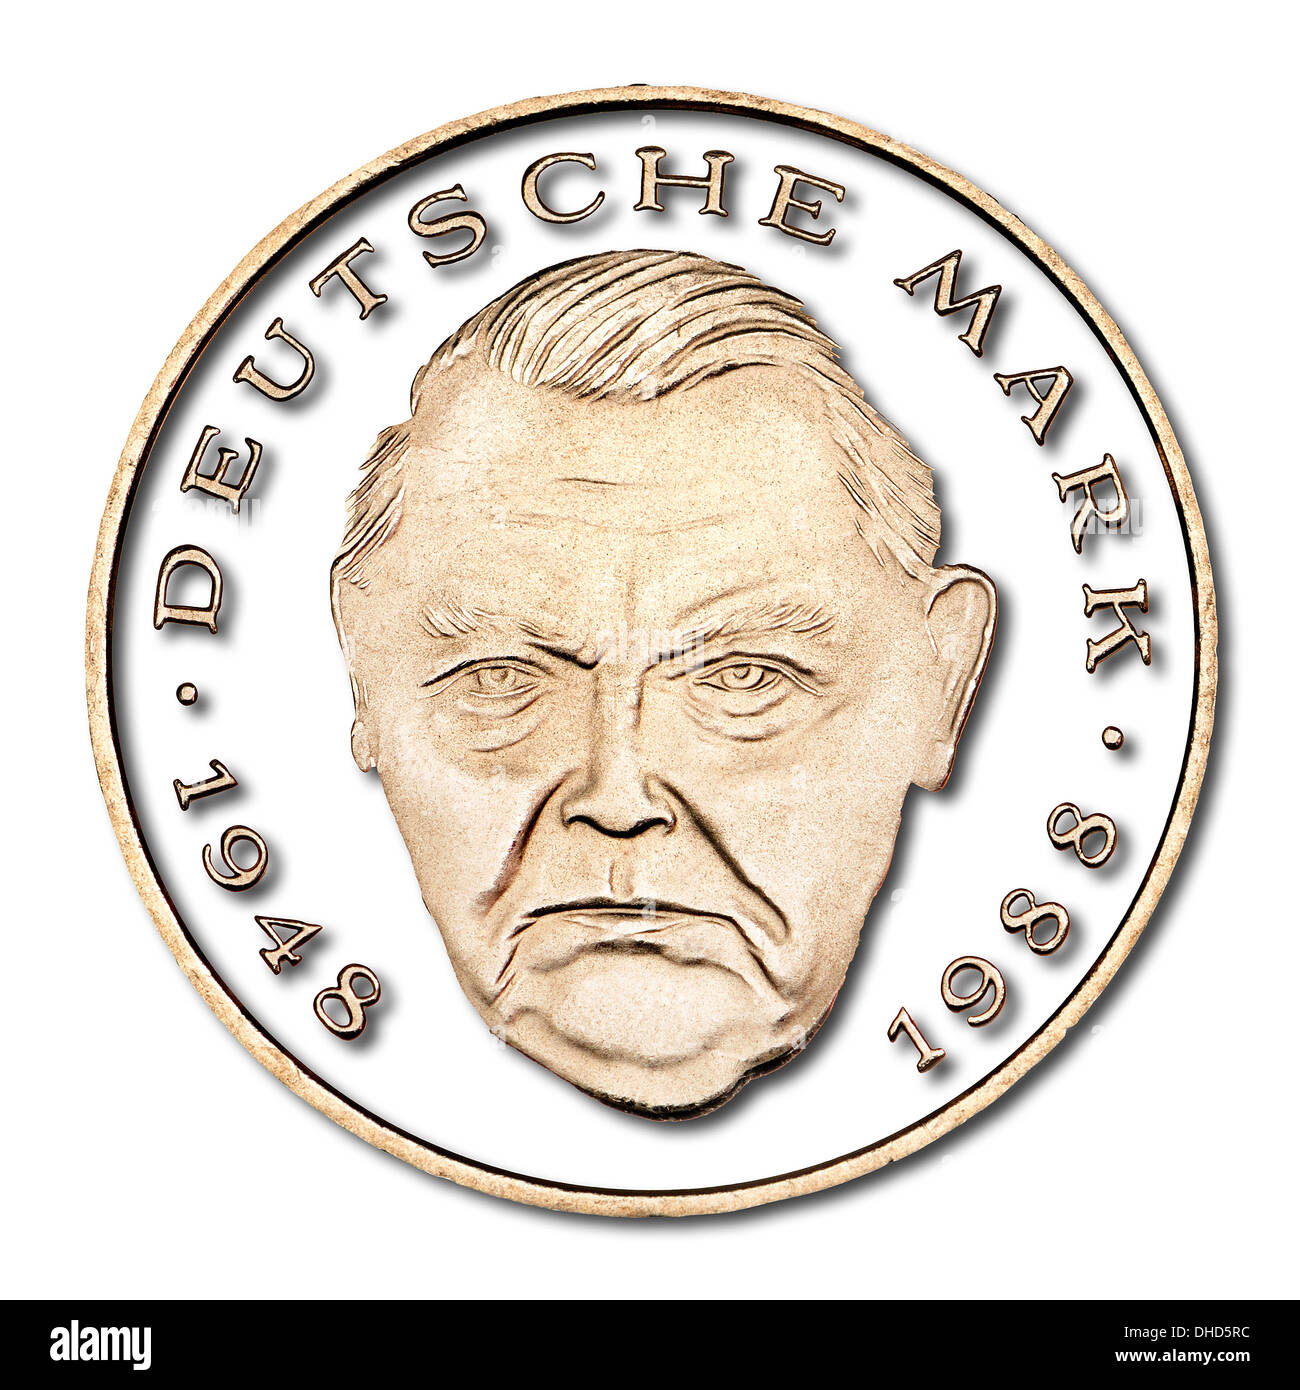 German 2 Deutschmark coin of 1997 - Portrait of Ludwig Wilhelm Erhard , German Chancellor 1963-66, from German 2 Mark coin - Stock Image